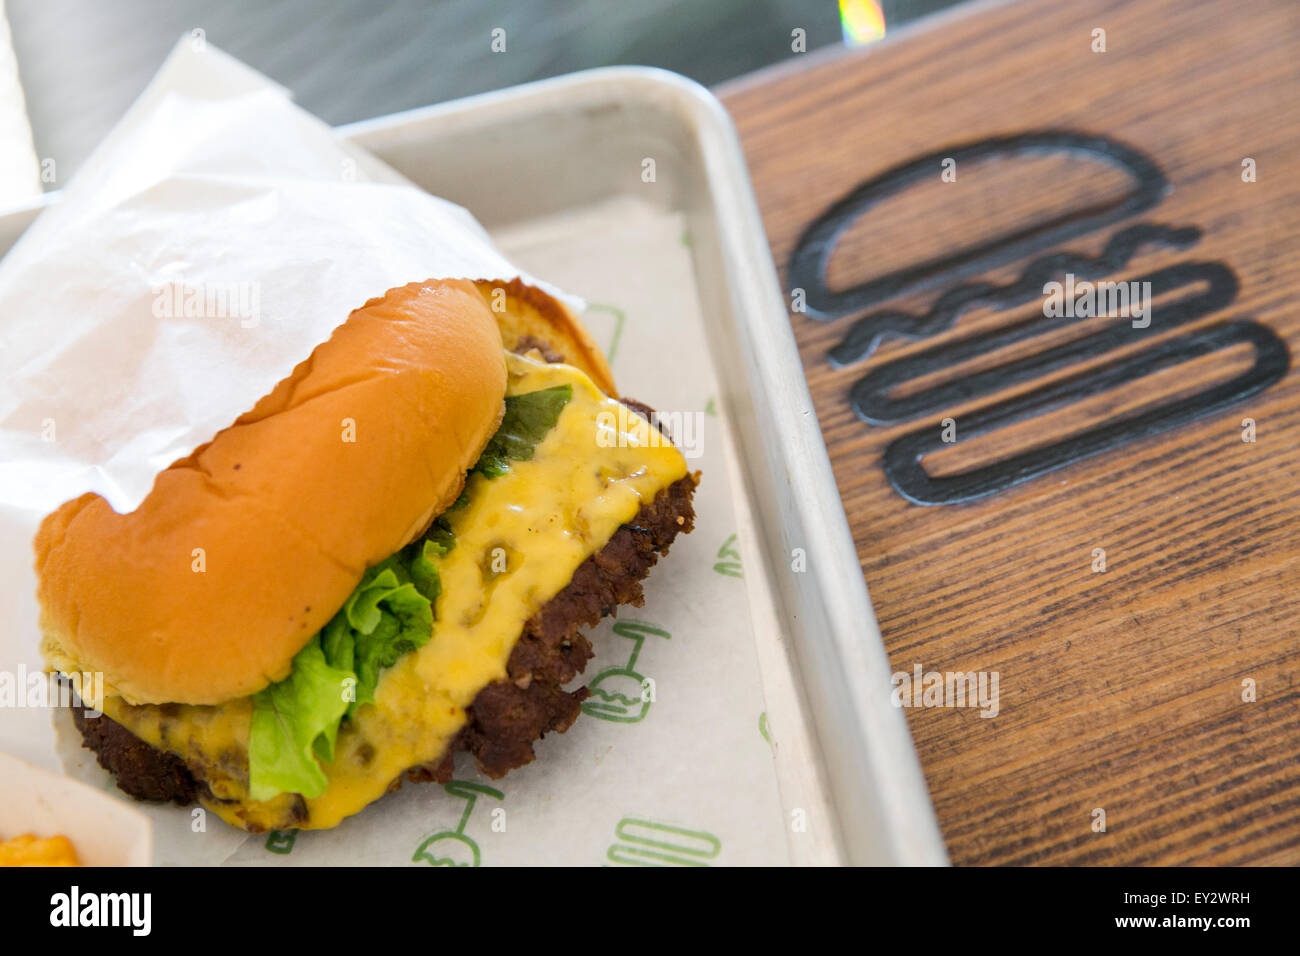 A Shake Shack fast casual restaurant in downtown Washington, D.C., on July 12, 2015. - Stock Image